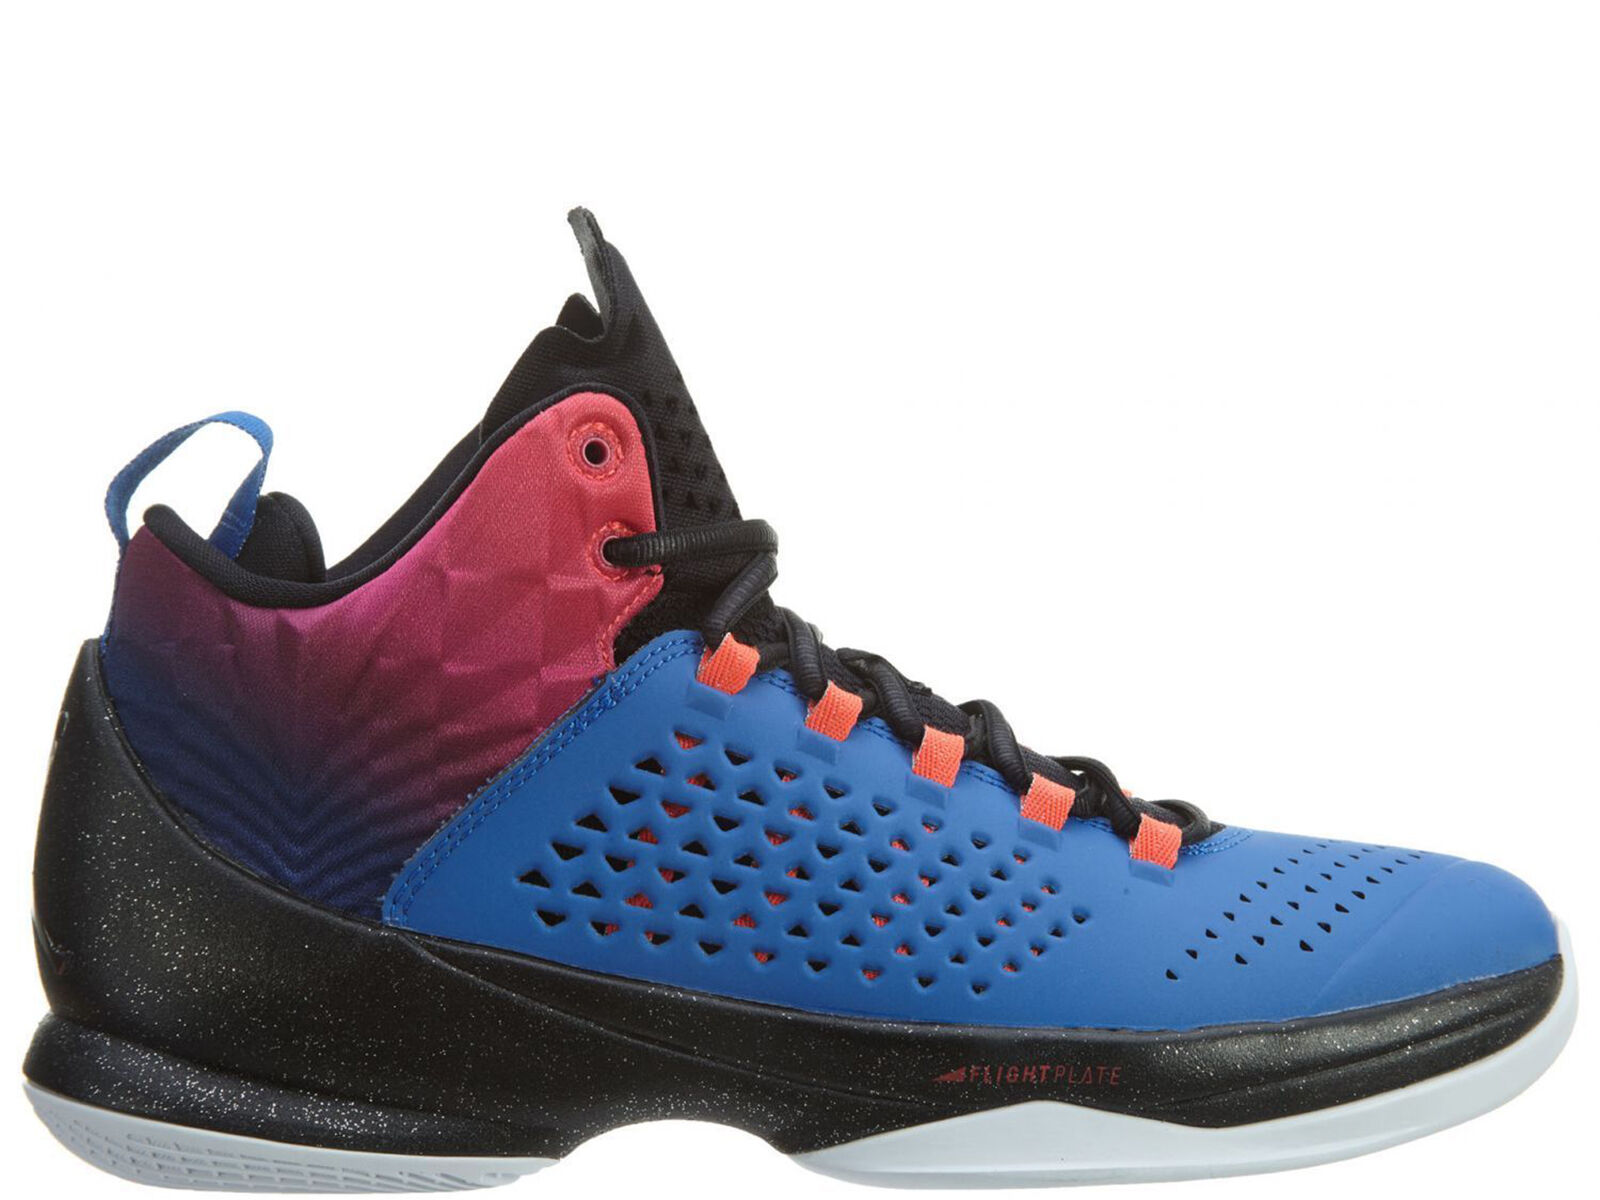 99382f09f590 Jordan Melo M11 Mens 716227-425 Royal Fireberry Black Basketball ...